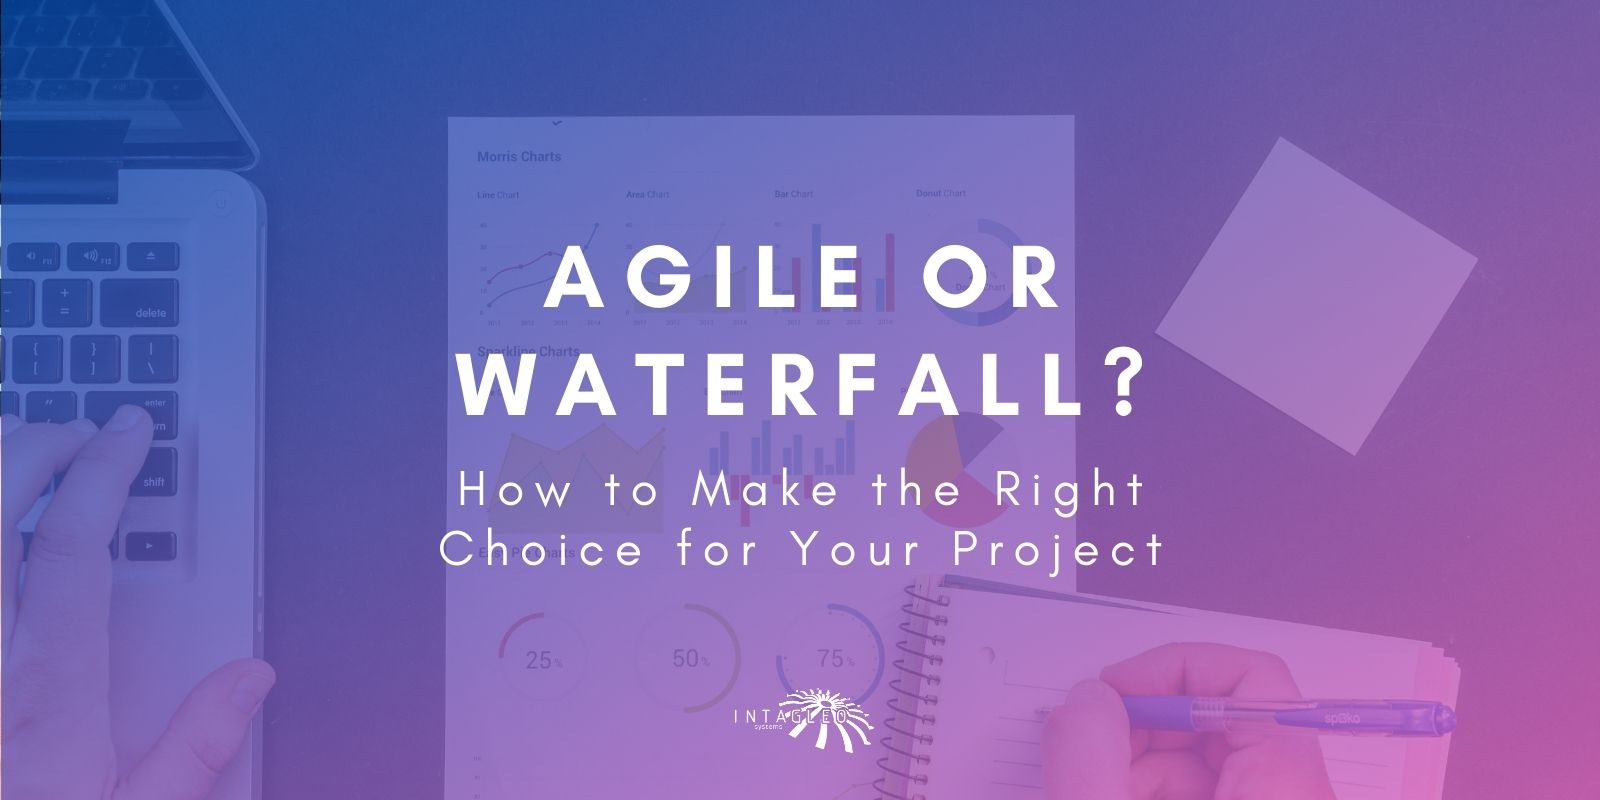 Agile or Waterfall?: How to Make the Right Choice for Your Project